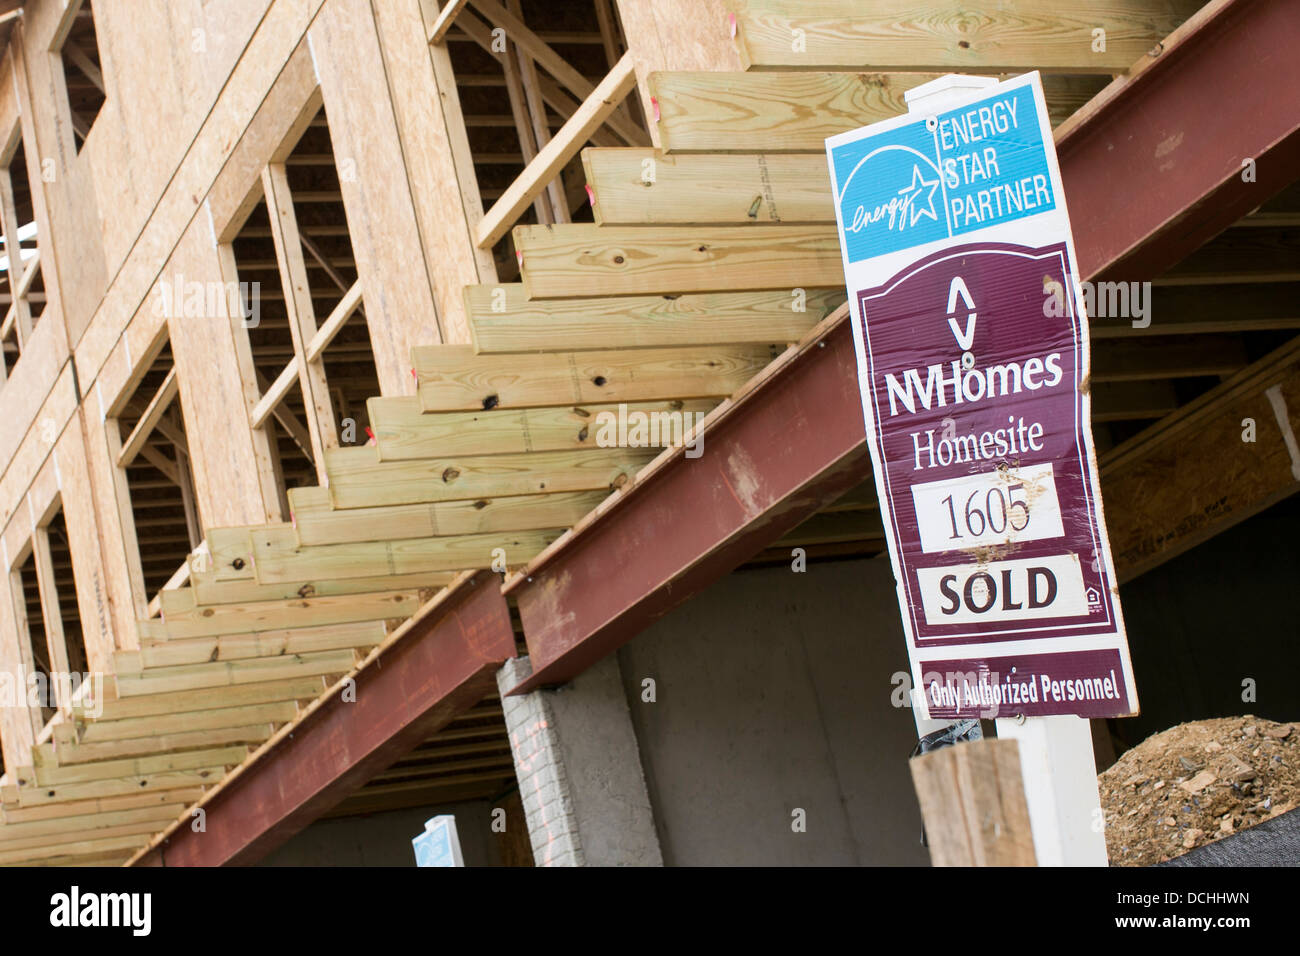 Construction of an NV Homes community with 'sold' signs.  - Stock Image